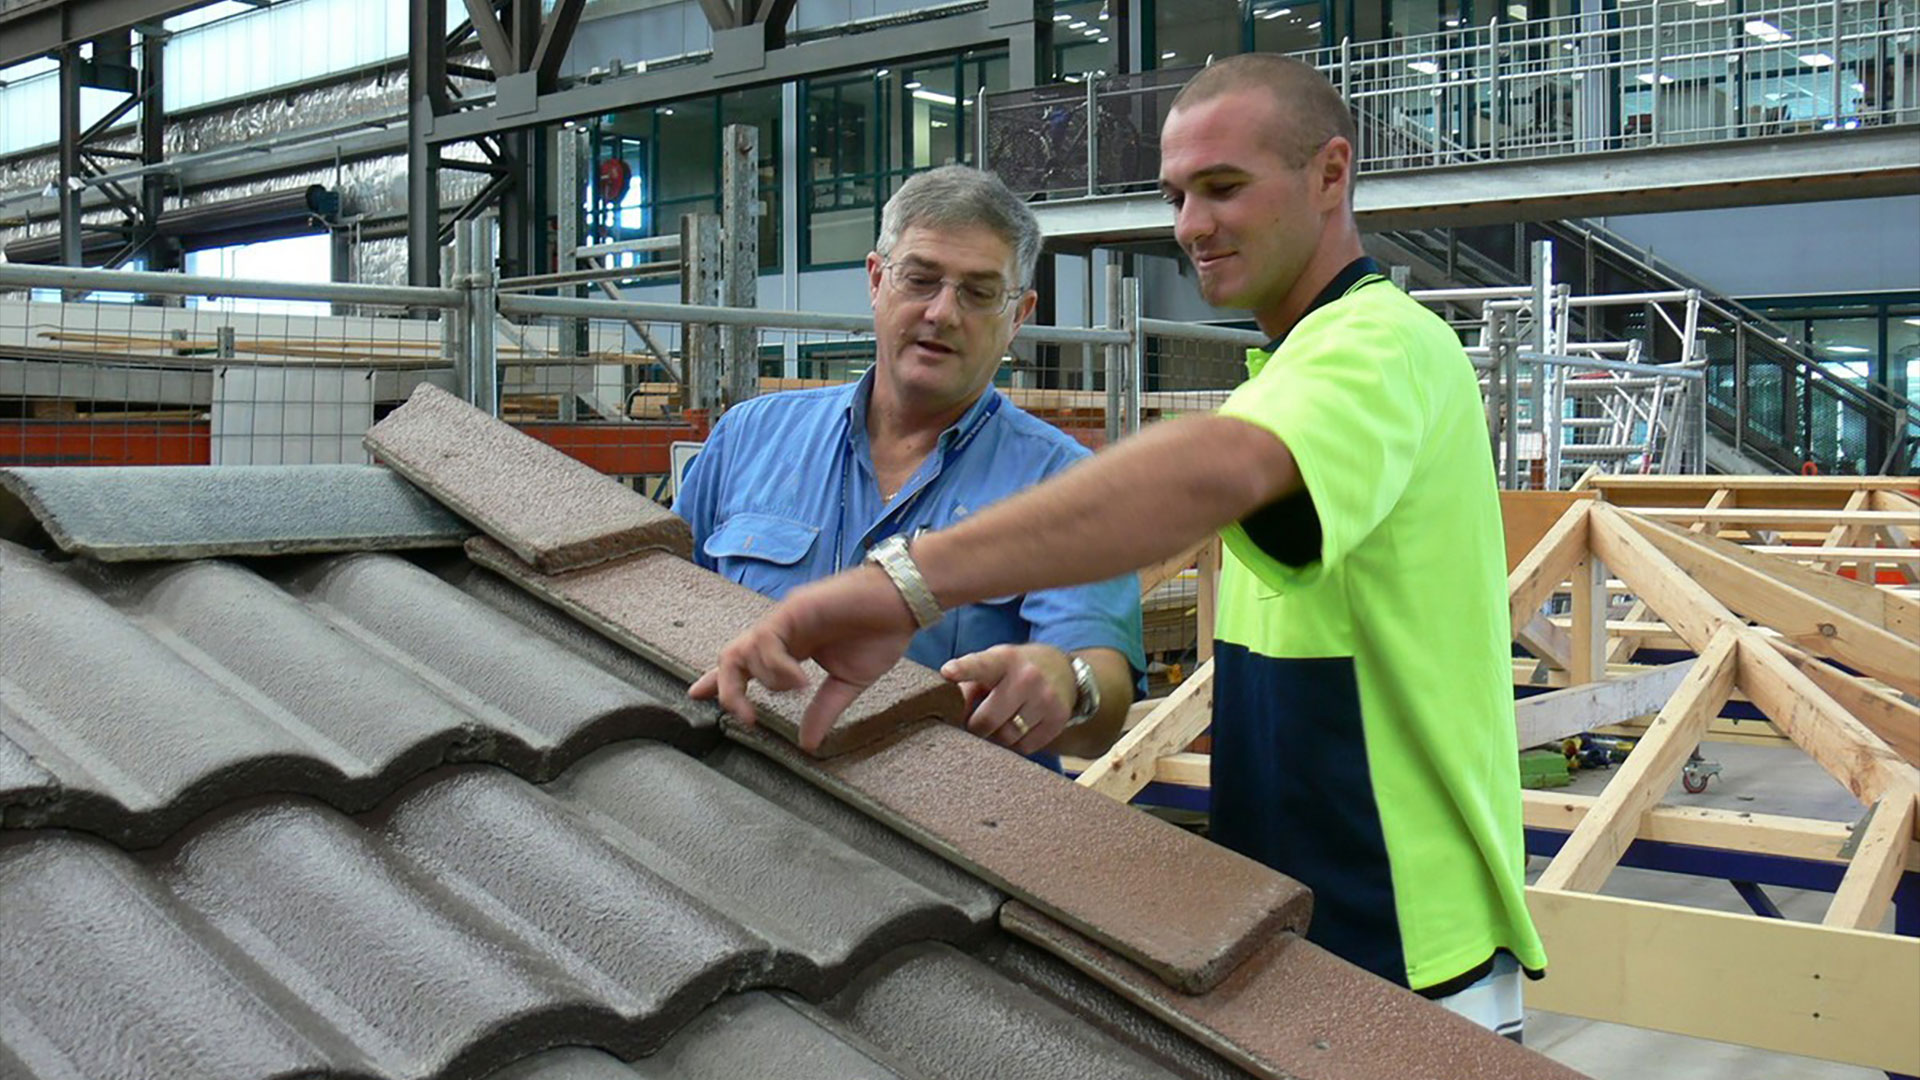 study roof tiling at tafe queensland